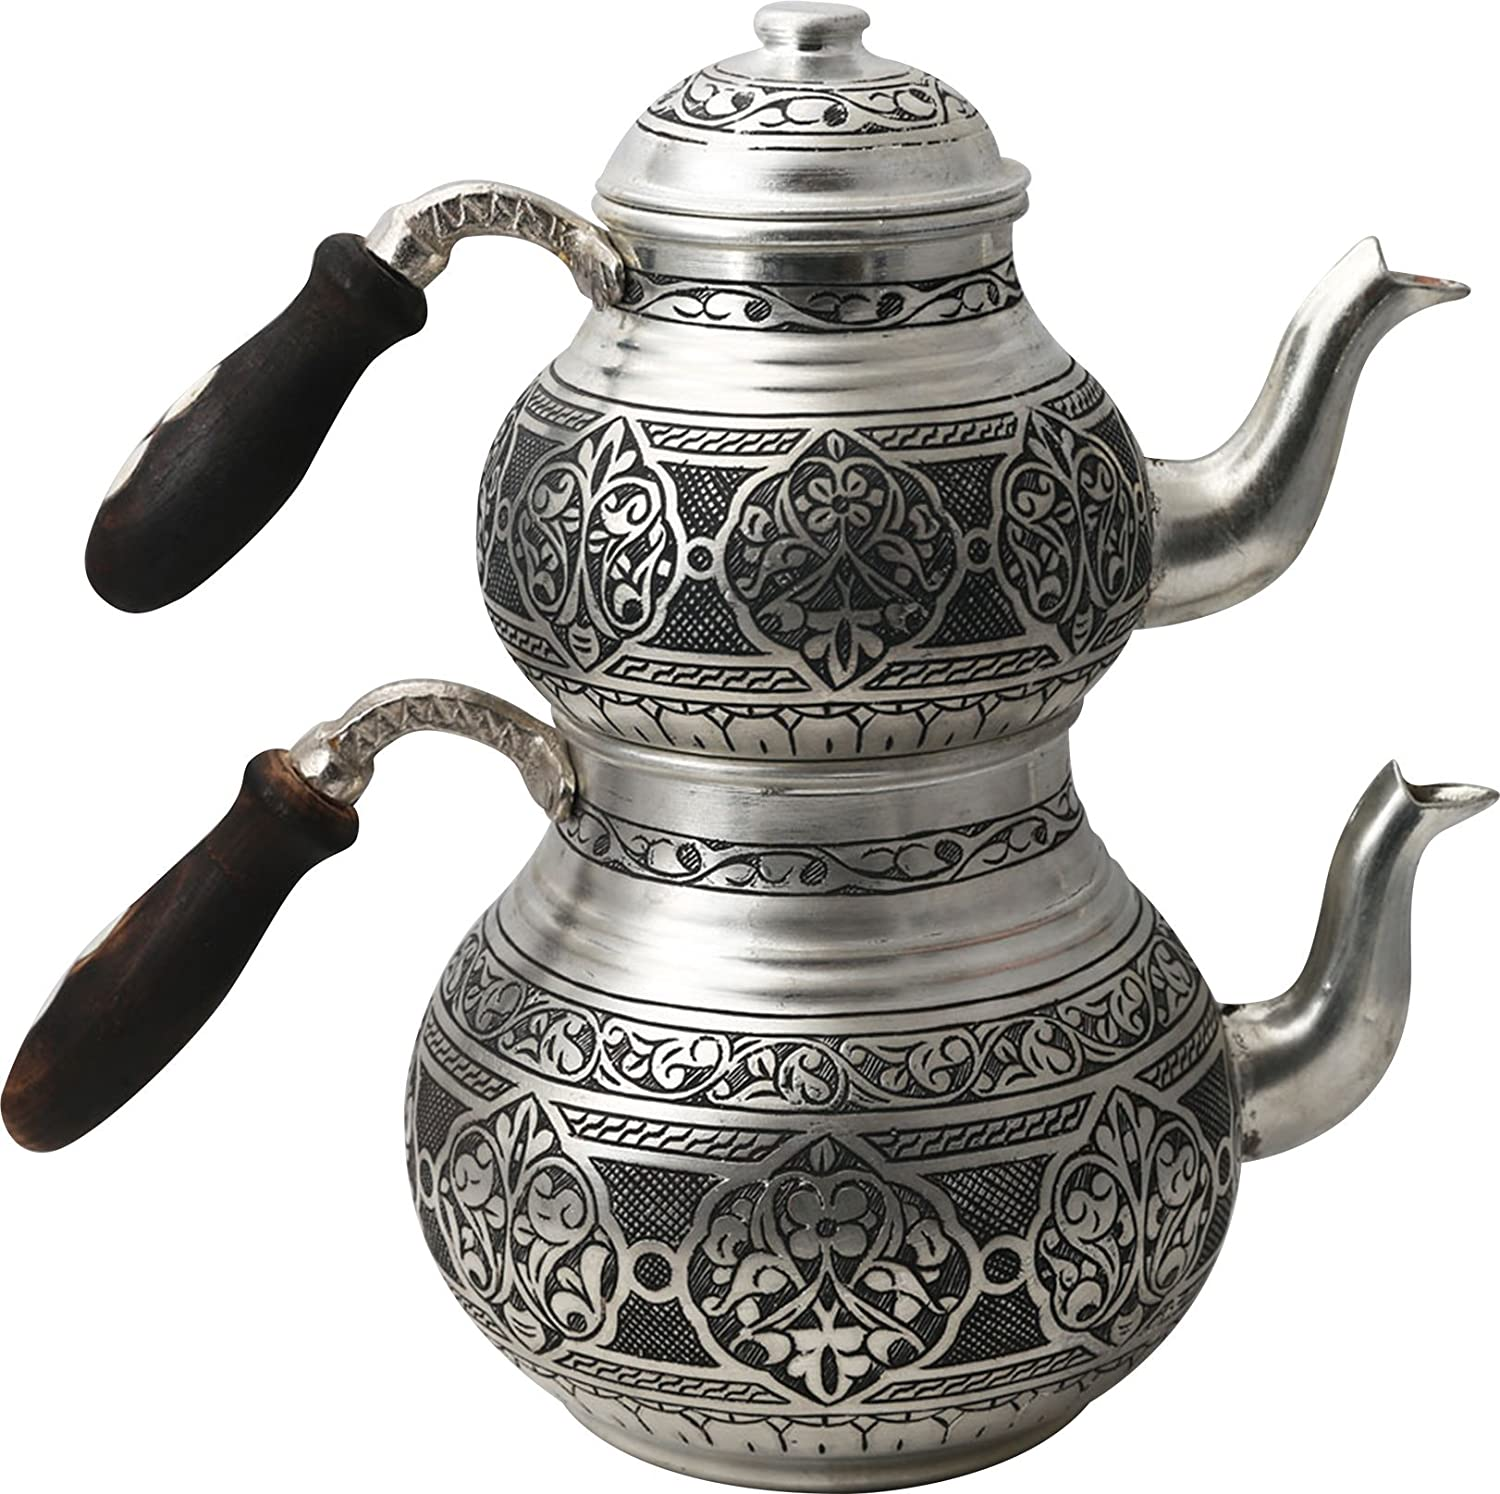 Handcrafted Copper Turkish Tea Pot Set, Tea Maker, Samovar, Ottoman Antique Handmade Tea Pot Kettle, Traditional Turkish Black Tea Maker-(TP-107)